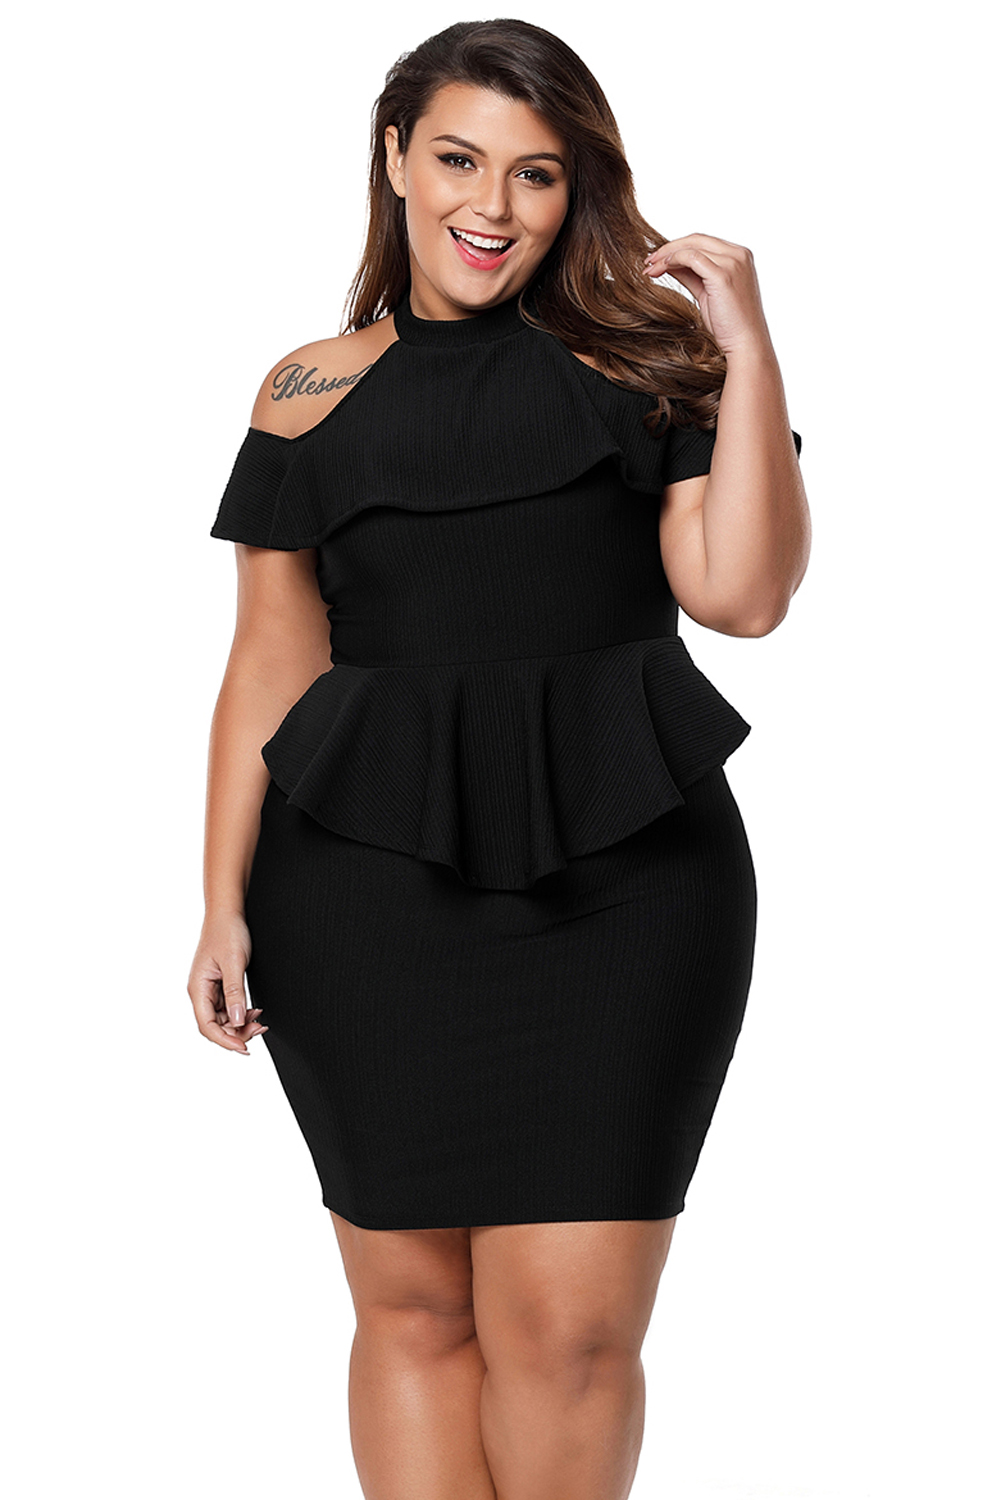 2ce2c0f0249 Ruffle layer top with cold shoulder detail. Flattering peplum waist in a  form hugging fit. Crafted by textured stretchy knit